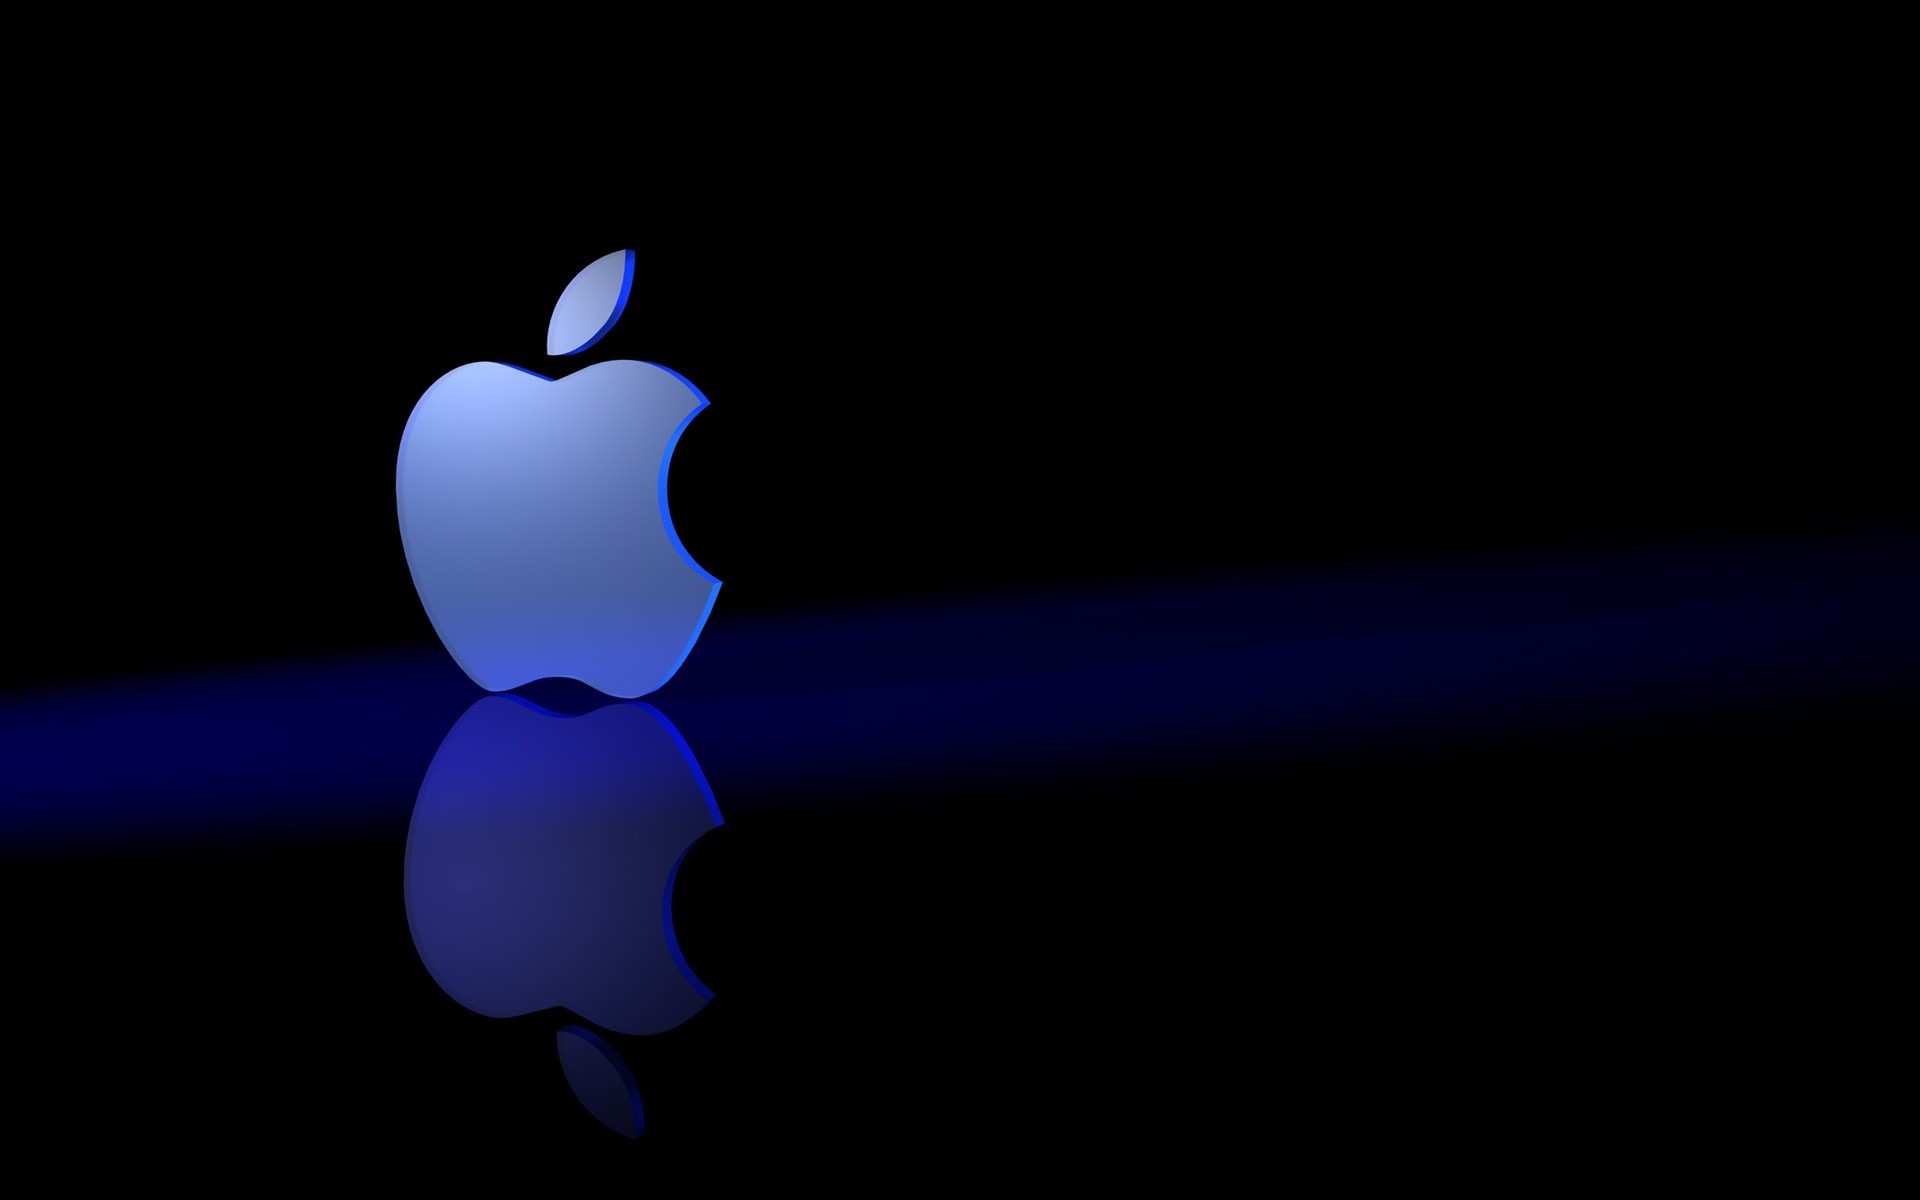 1920x1200  Apple Blue Wallpapers High Quality – Epic Wallpaperz